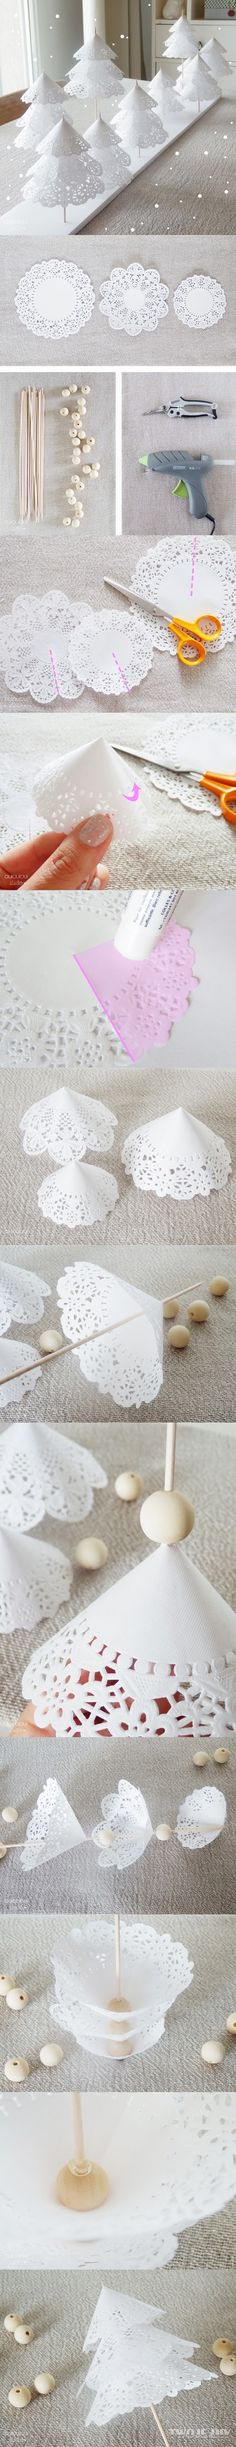 DIY doily trees